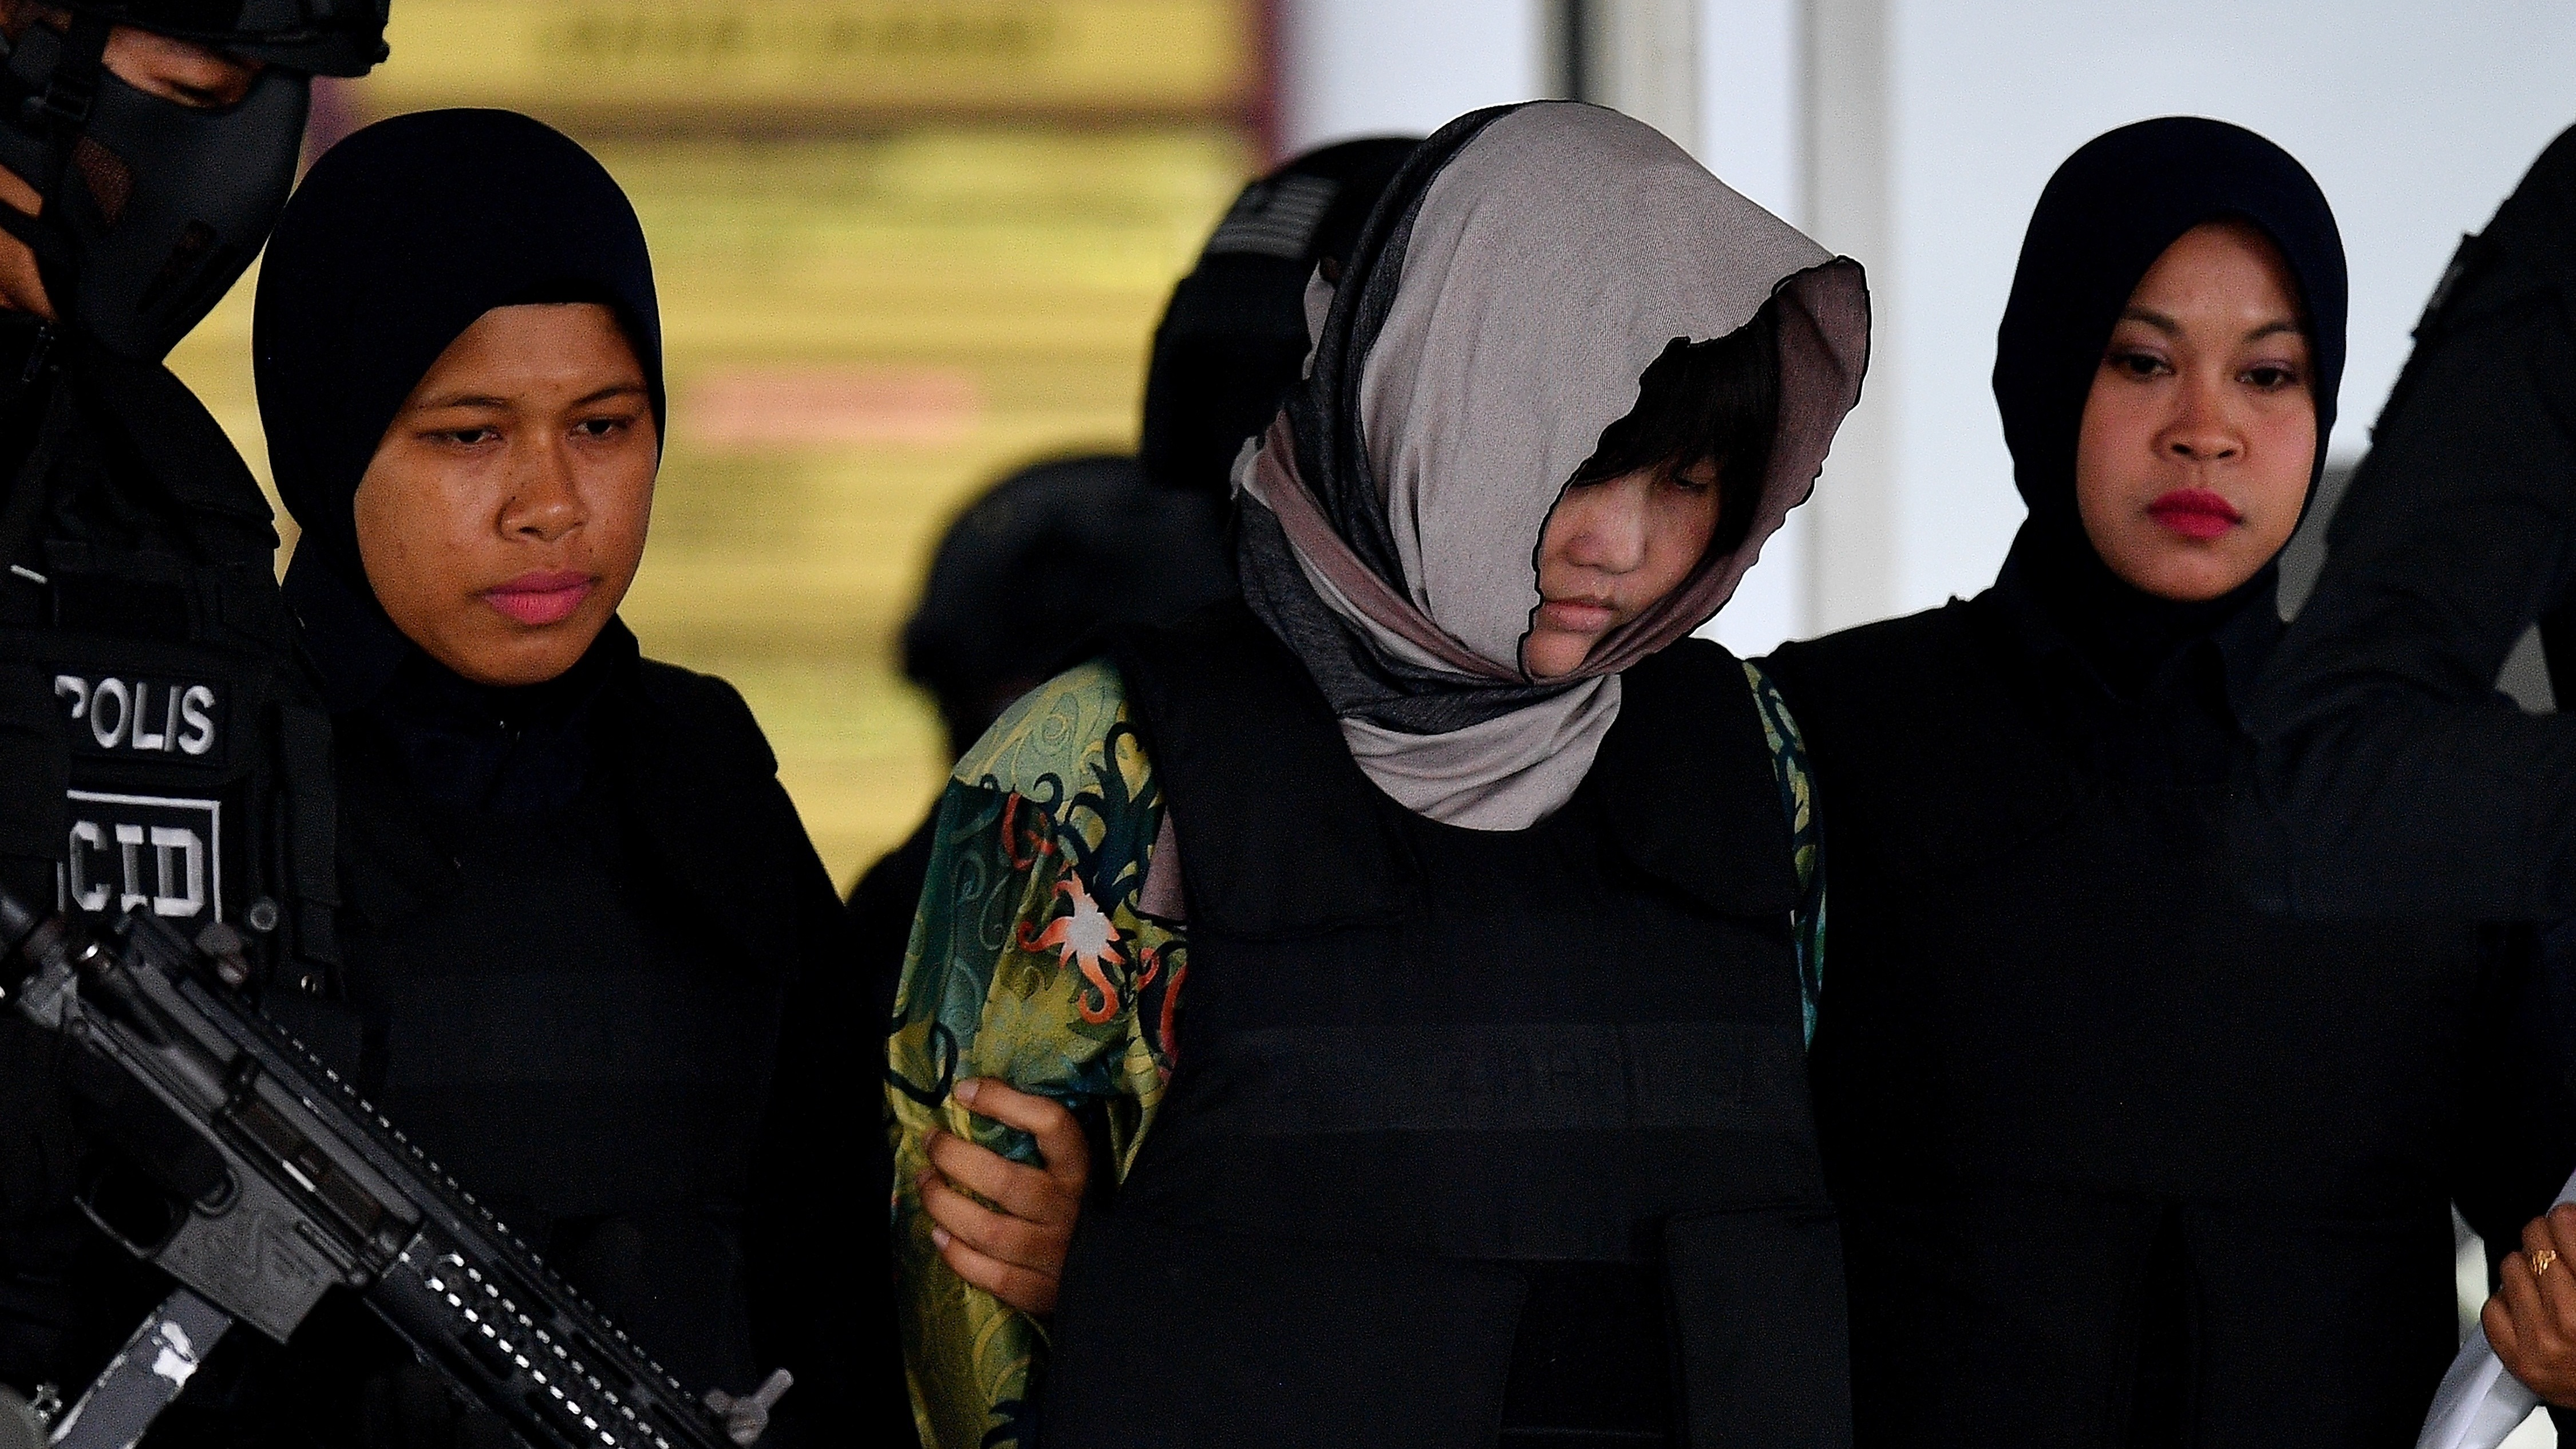 Judge Cites A 'Well-Planned Conspiracy' In Kim Jong Nam's Death